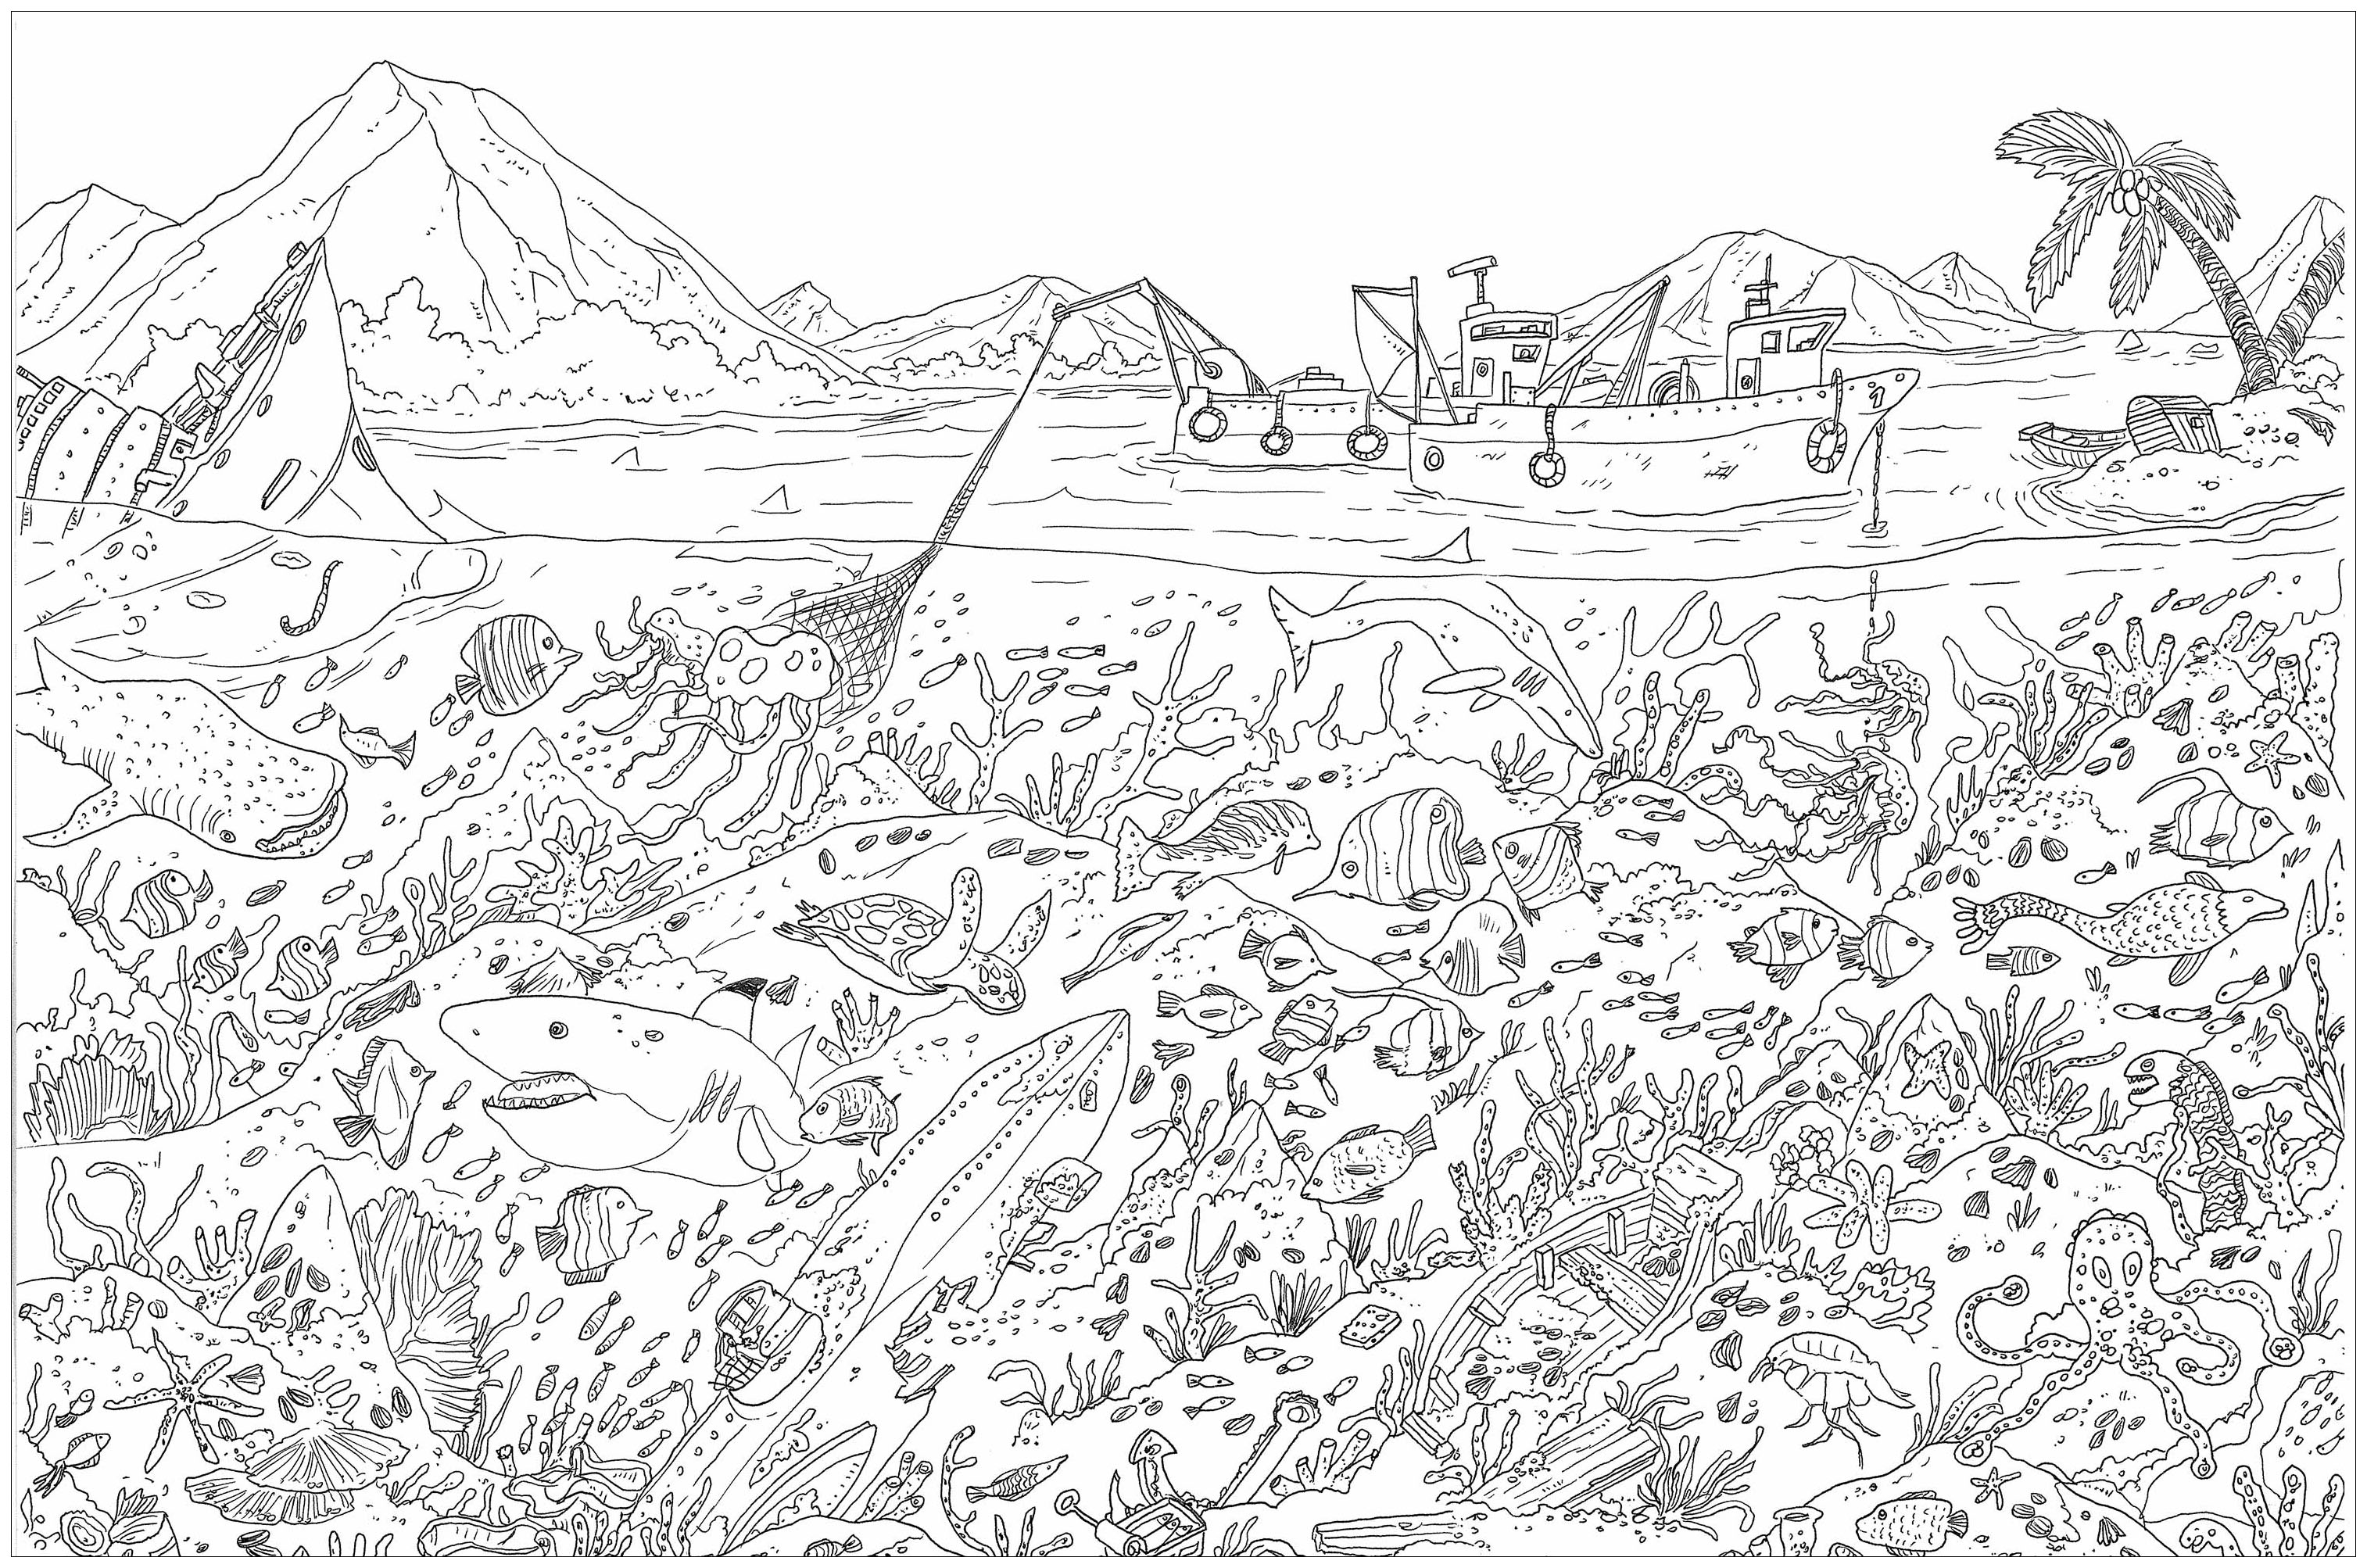 'Sea floor', a complex coloring page, 'Where is Waldo ?' style